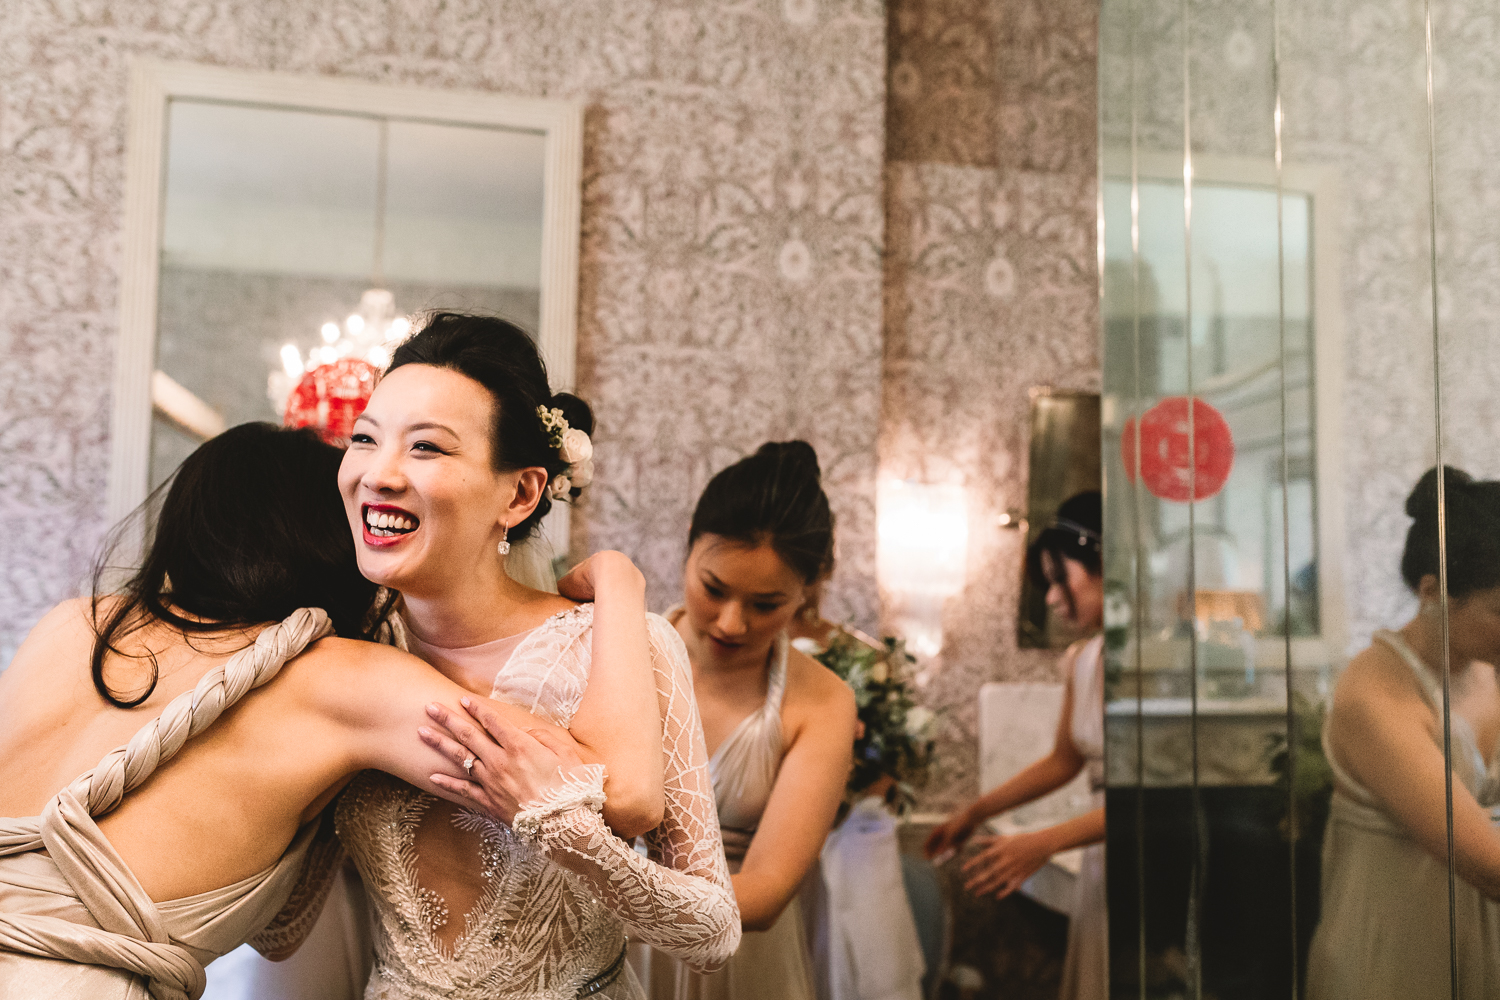 Bride smiling joyfully as she embraces bridesmaid in room at Babbington House in Bath